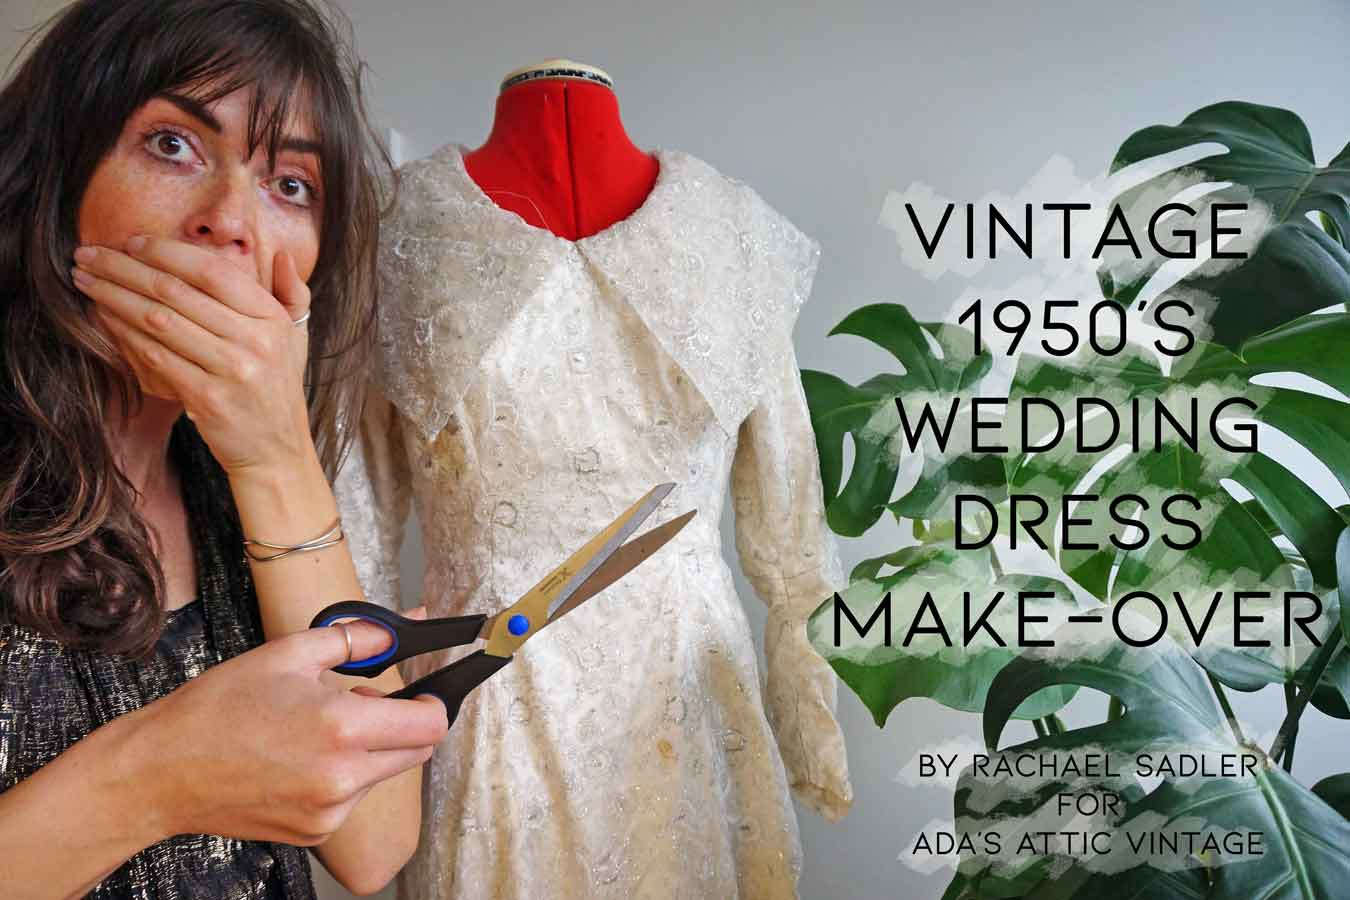 Vintage 1950s Wedding Dress Transformation